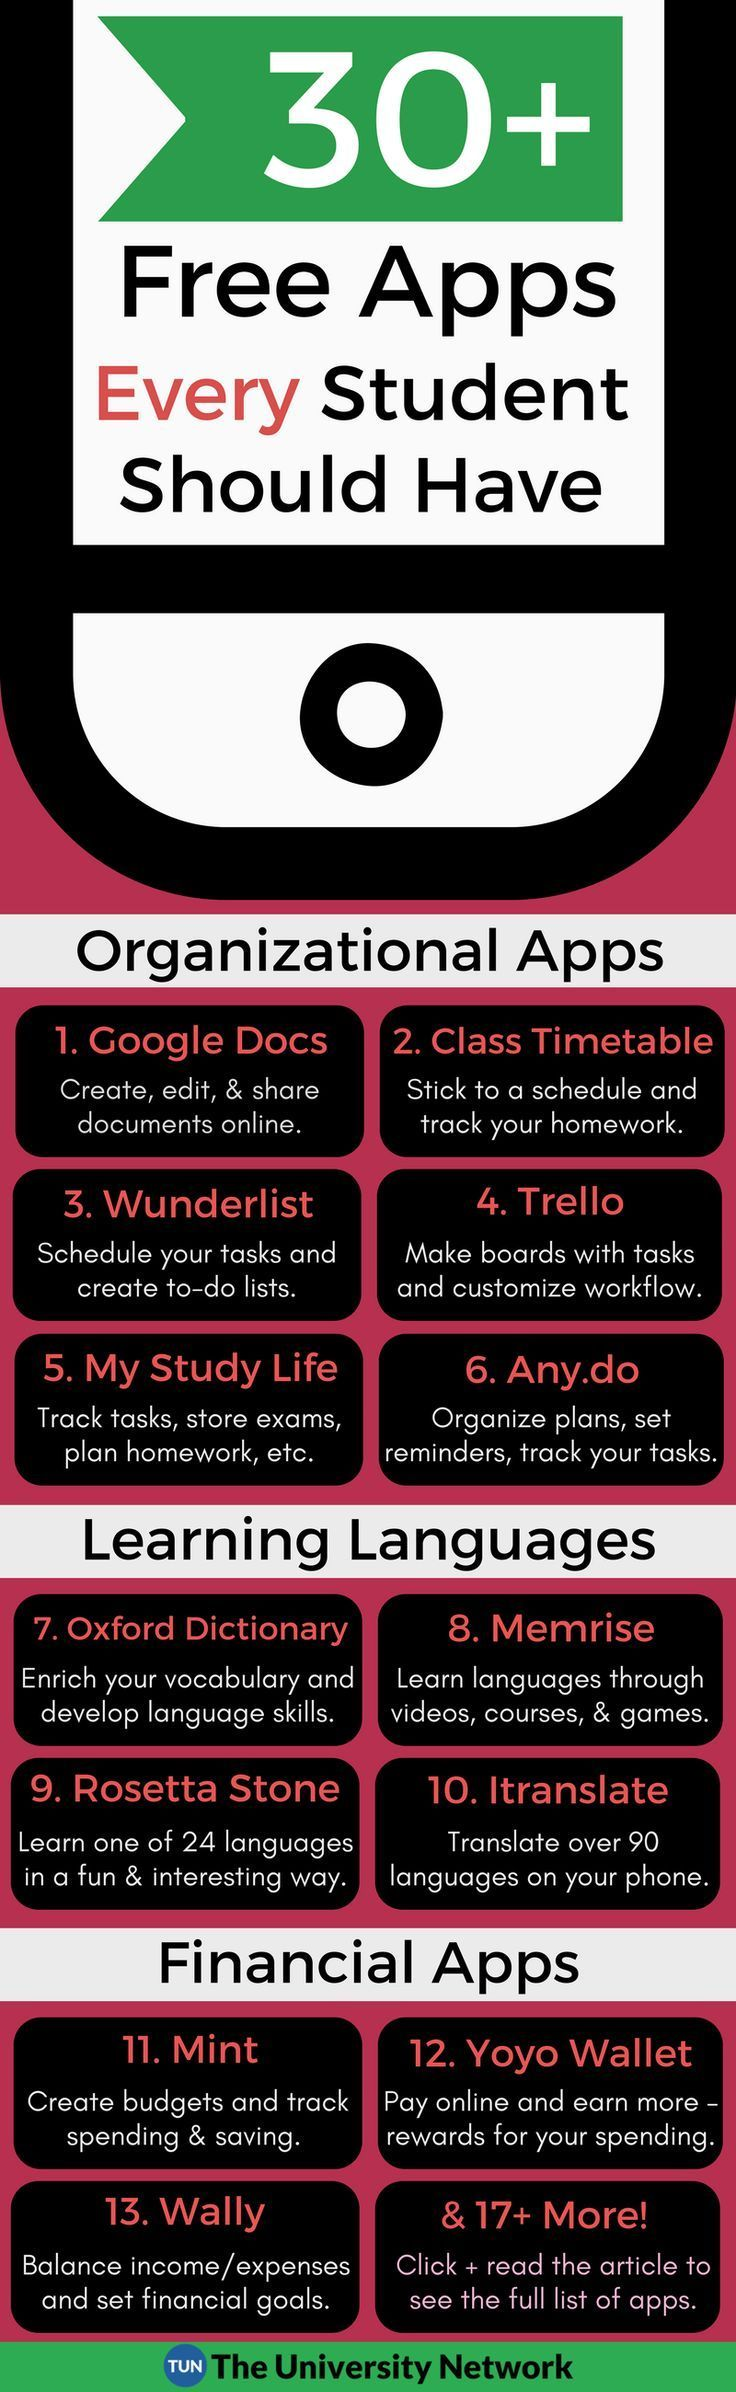 Here is a list of 30+ FREE APPS every student should know about and have on their phones!